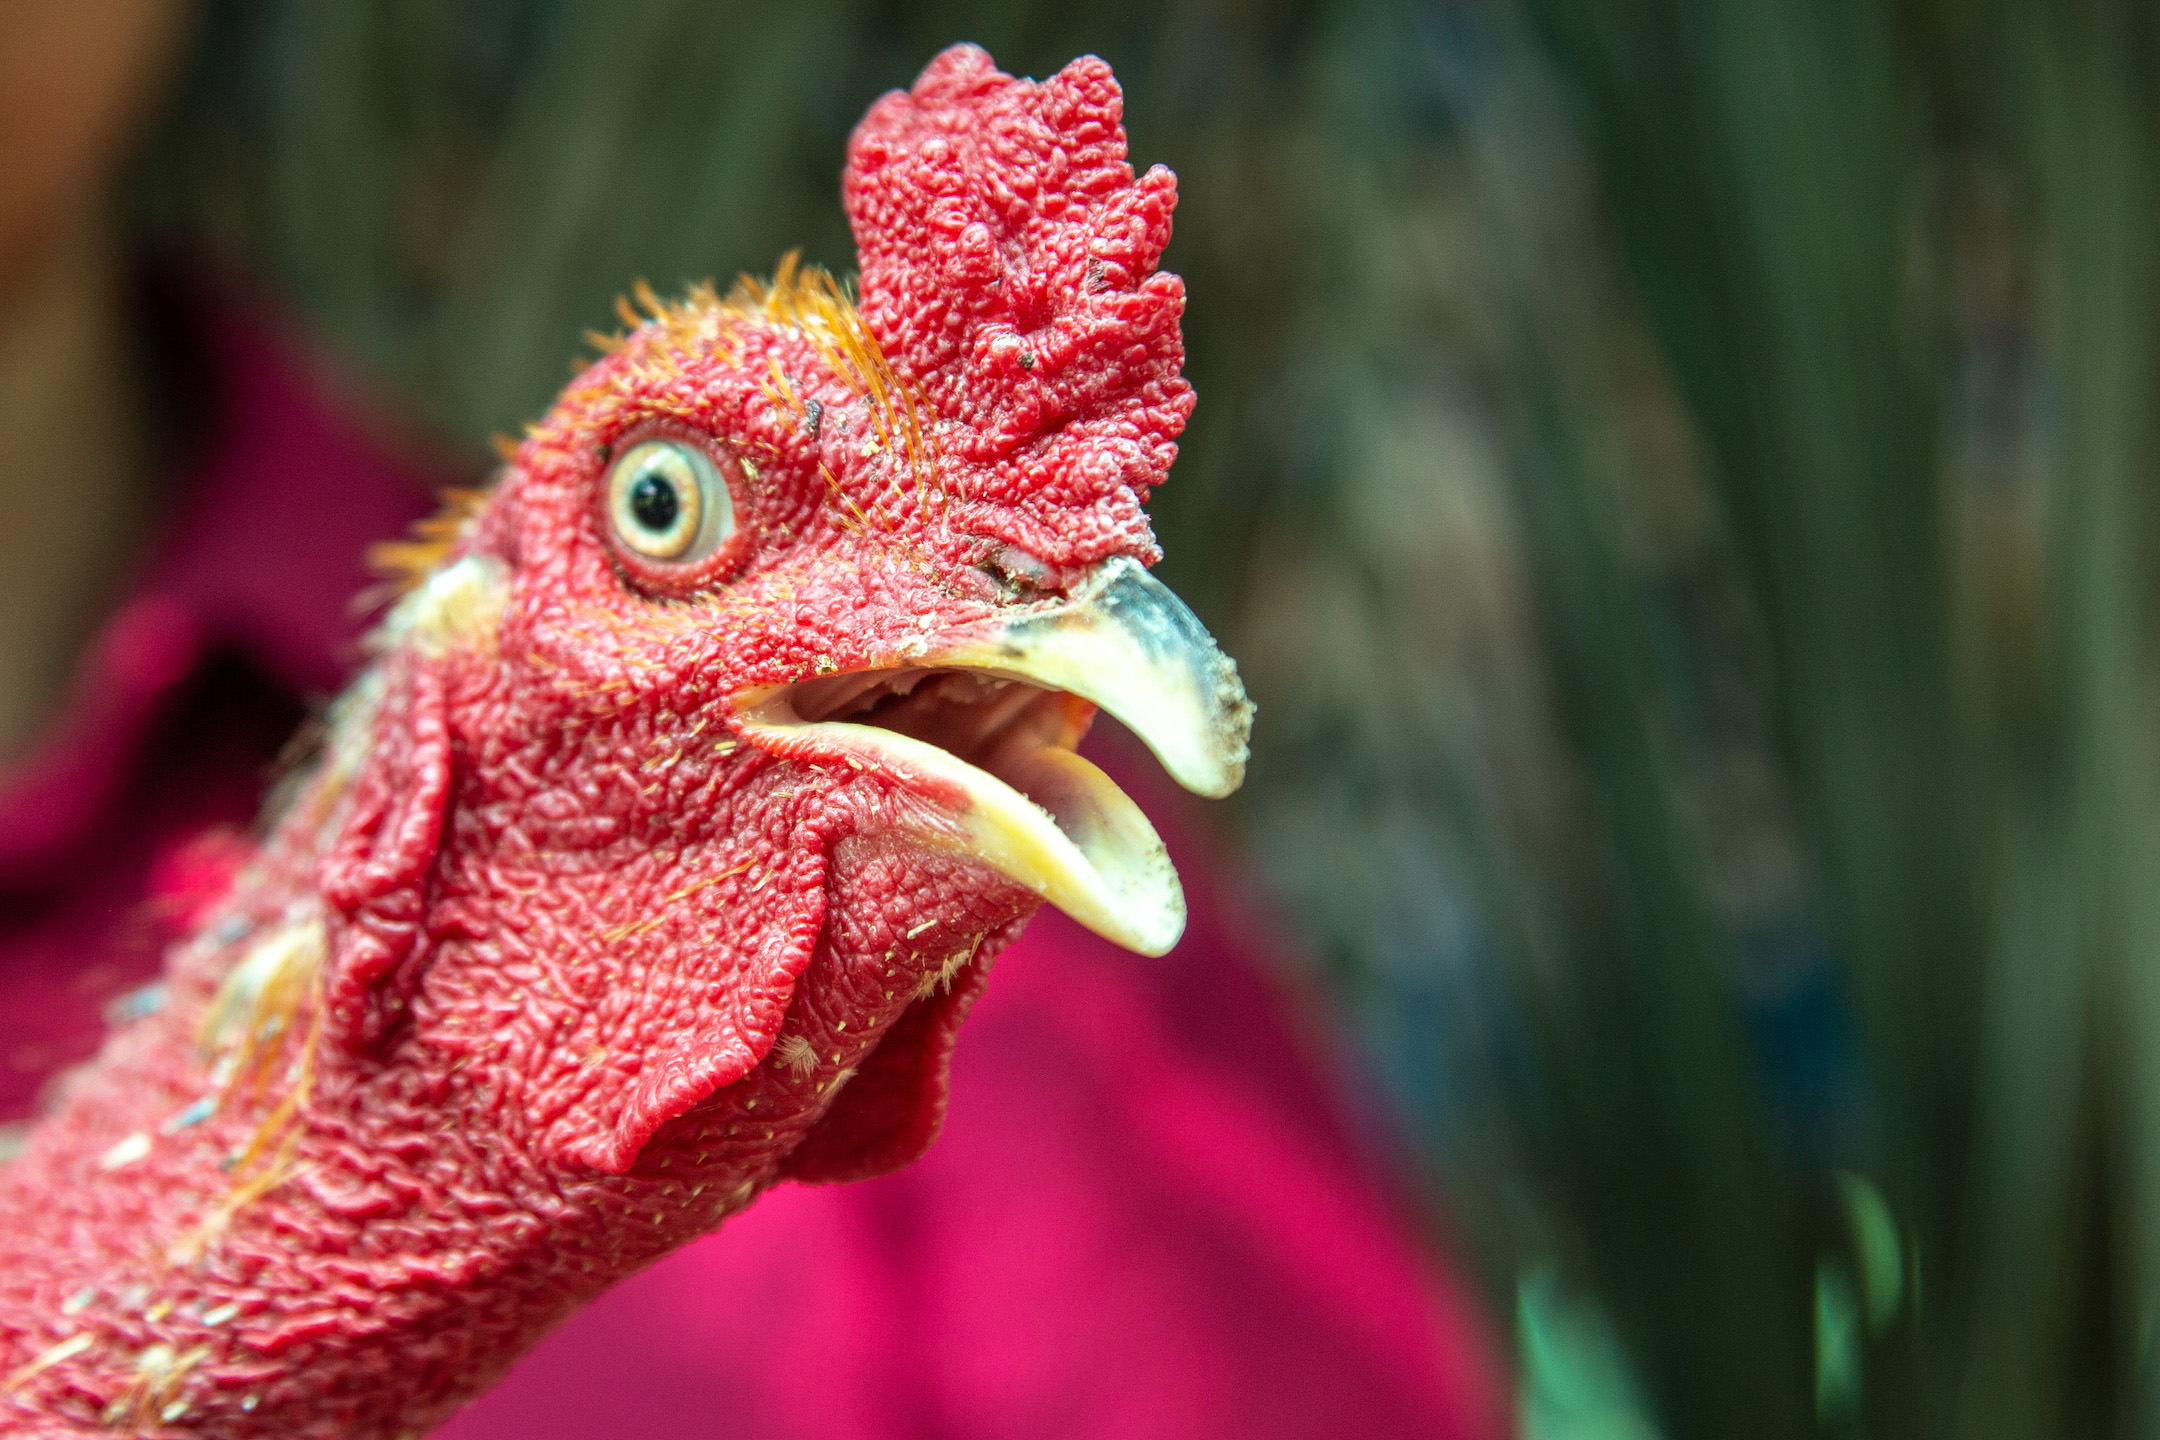 A close up shot of the head a chicken.